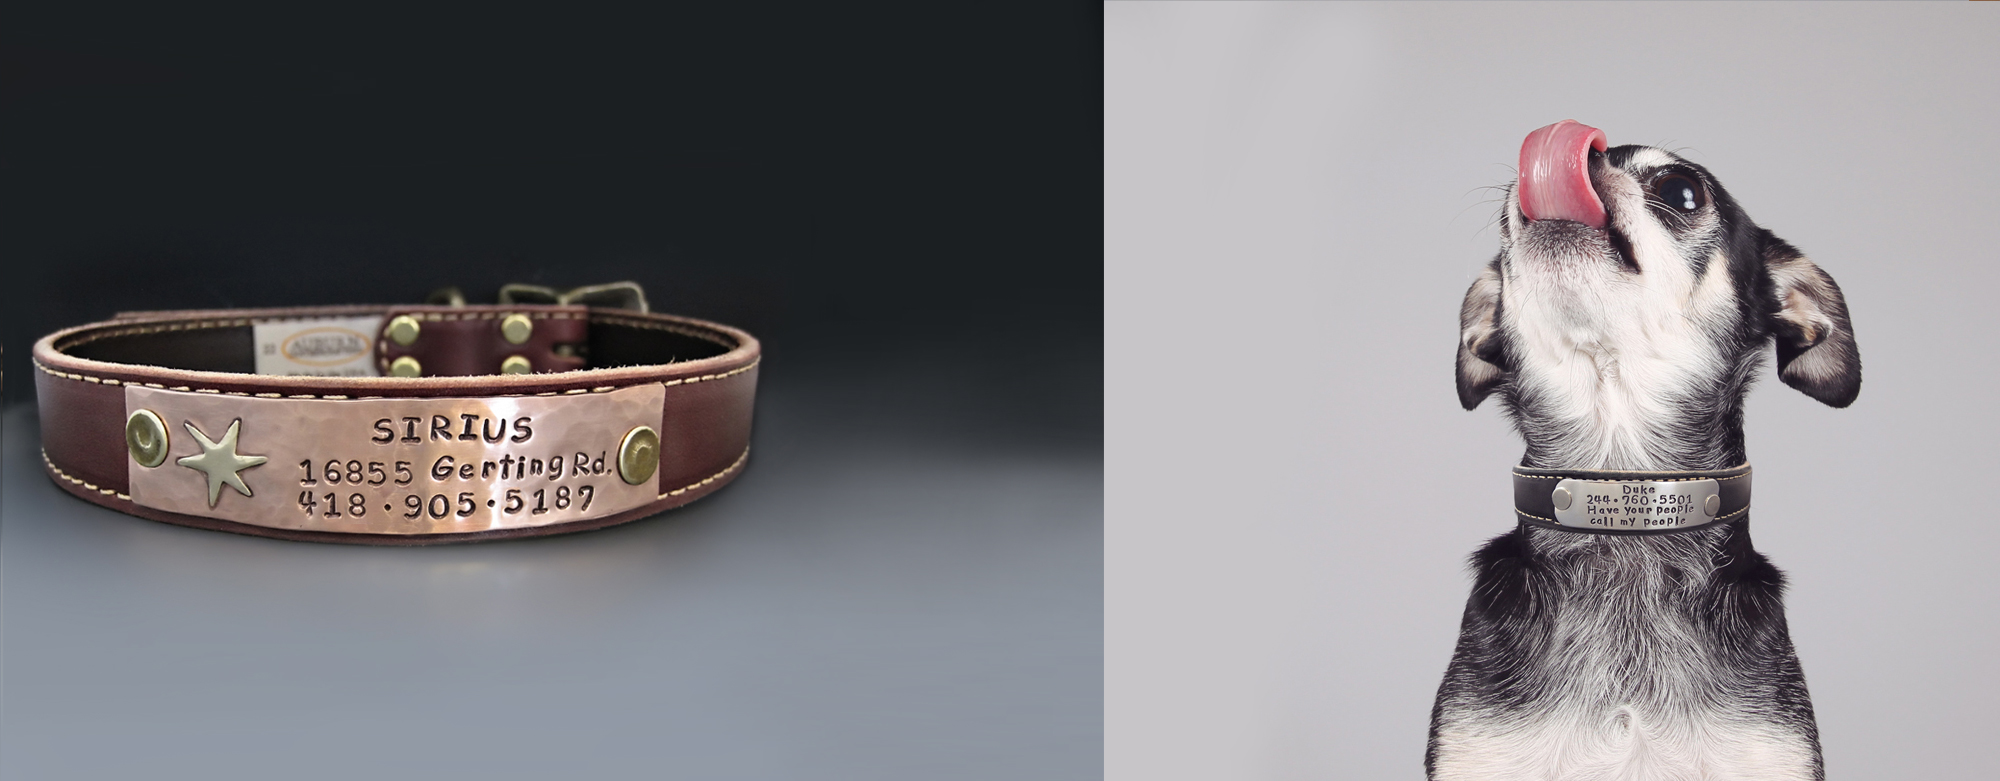 String of Jewels Custom Leather Dog Collars Banner